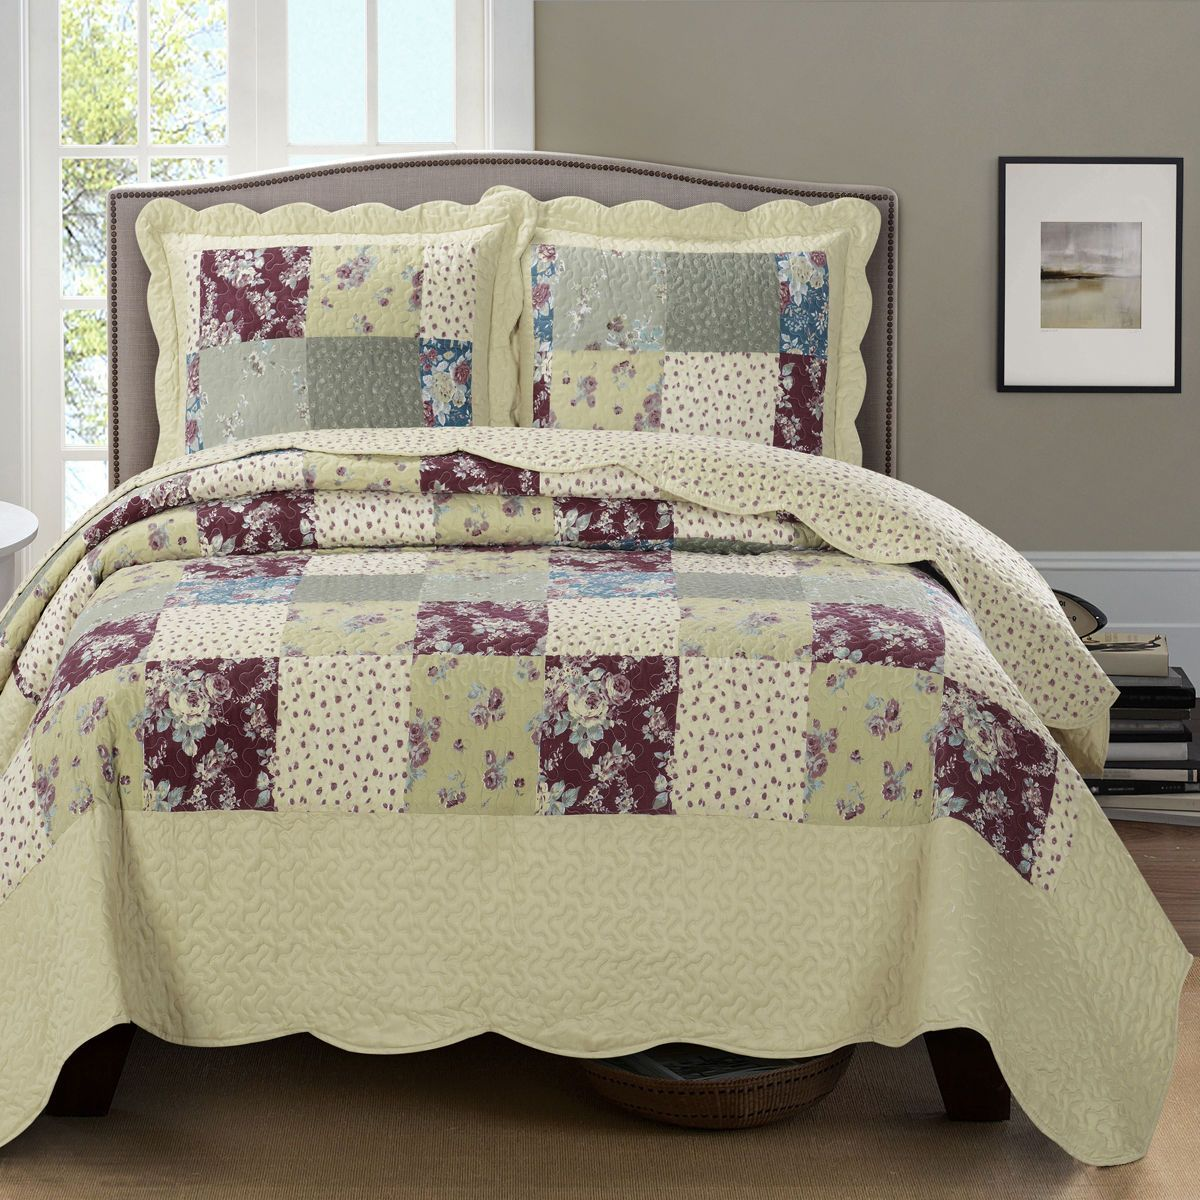 Superb Tania Full Size Coverlet Over Sized 3 Pc Set Luxury Microfiber Quilt